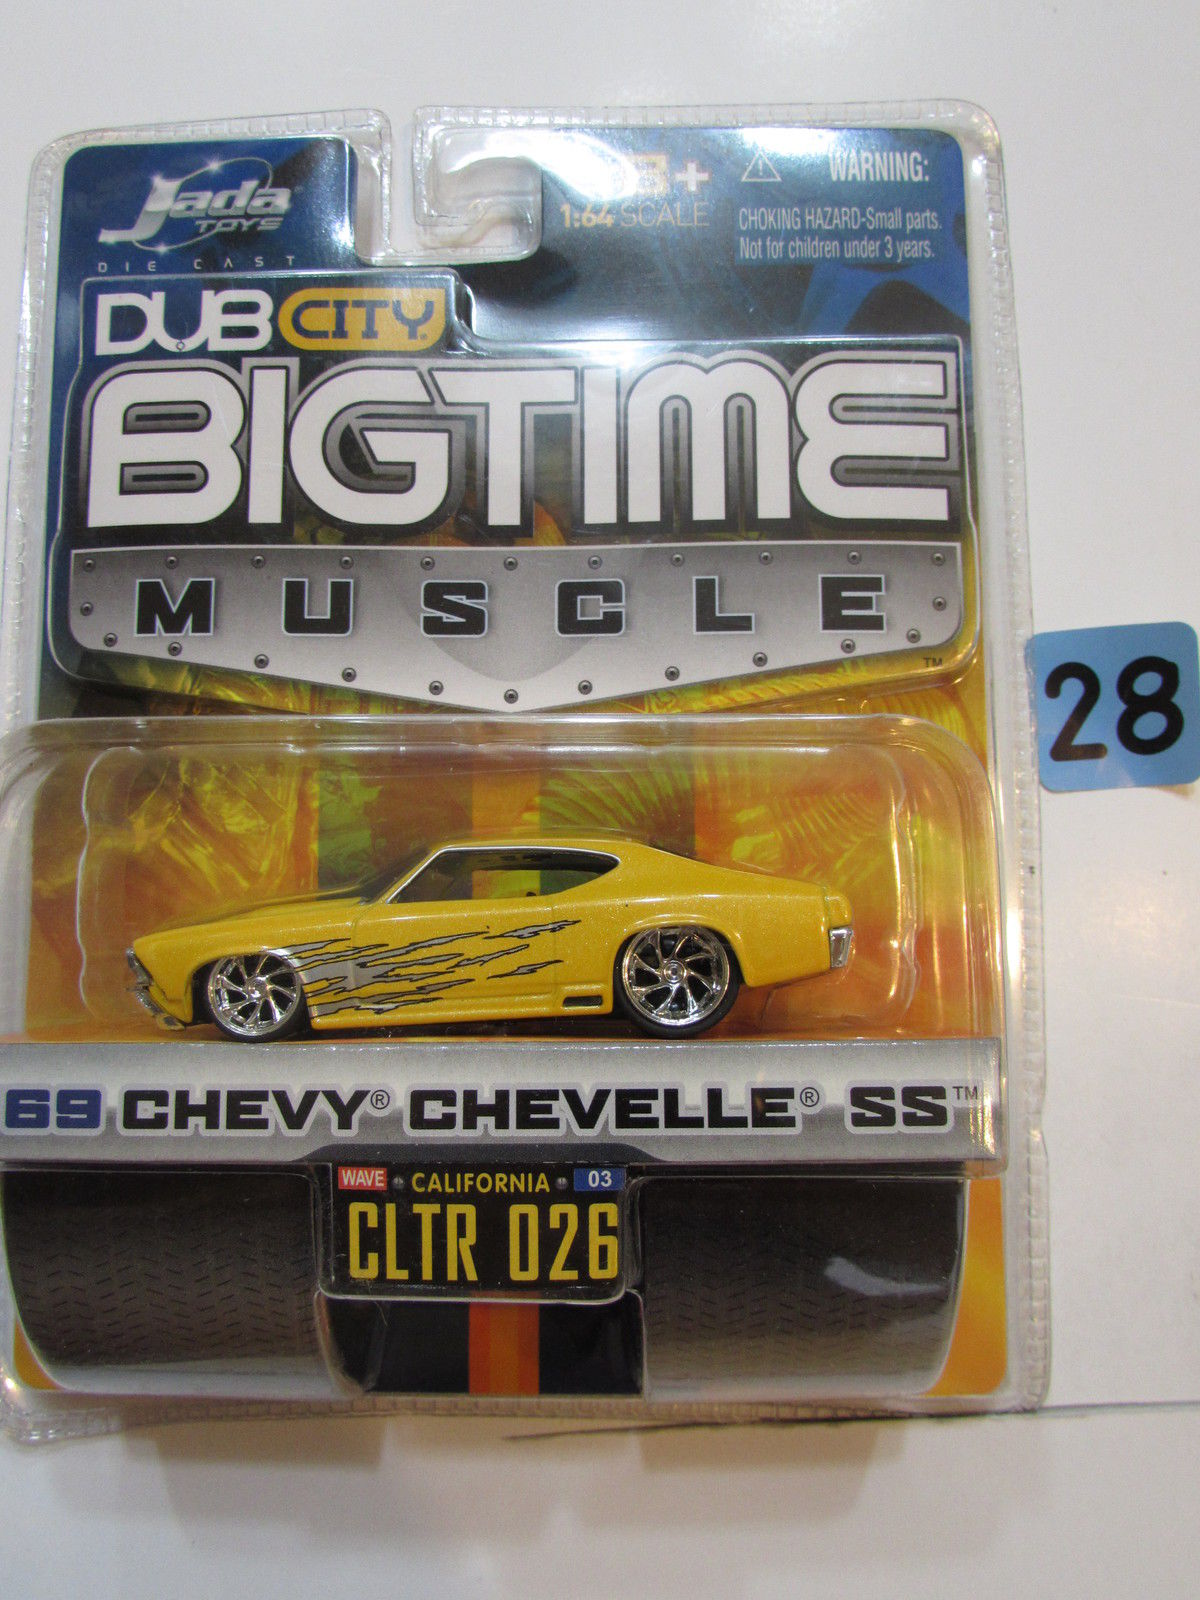 JADA DUB CITY BIGTIME MUSCLE '69 CHEVY CHEVELLE SS CLTR 026 YELLOW